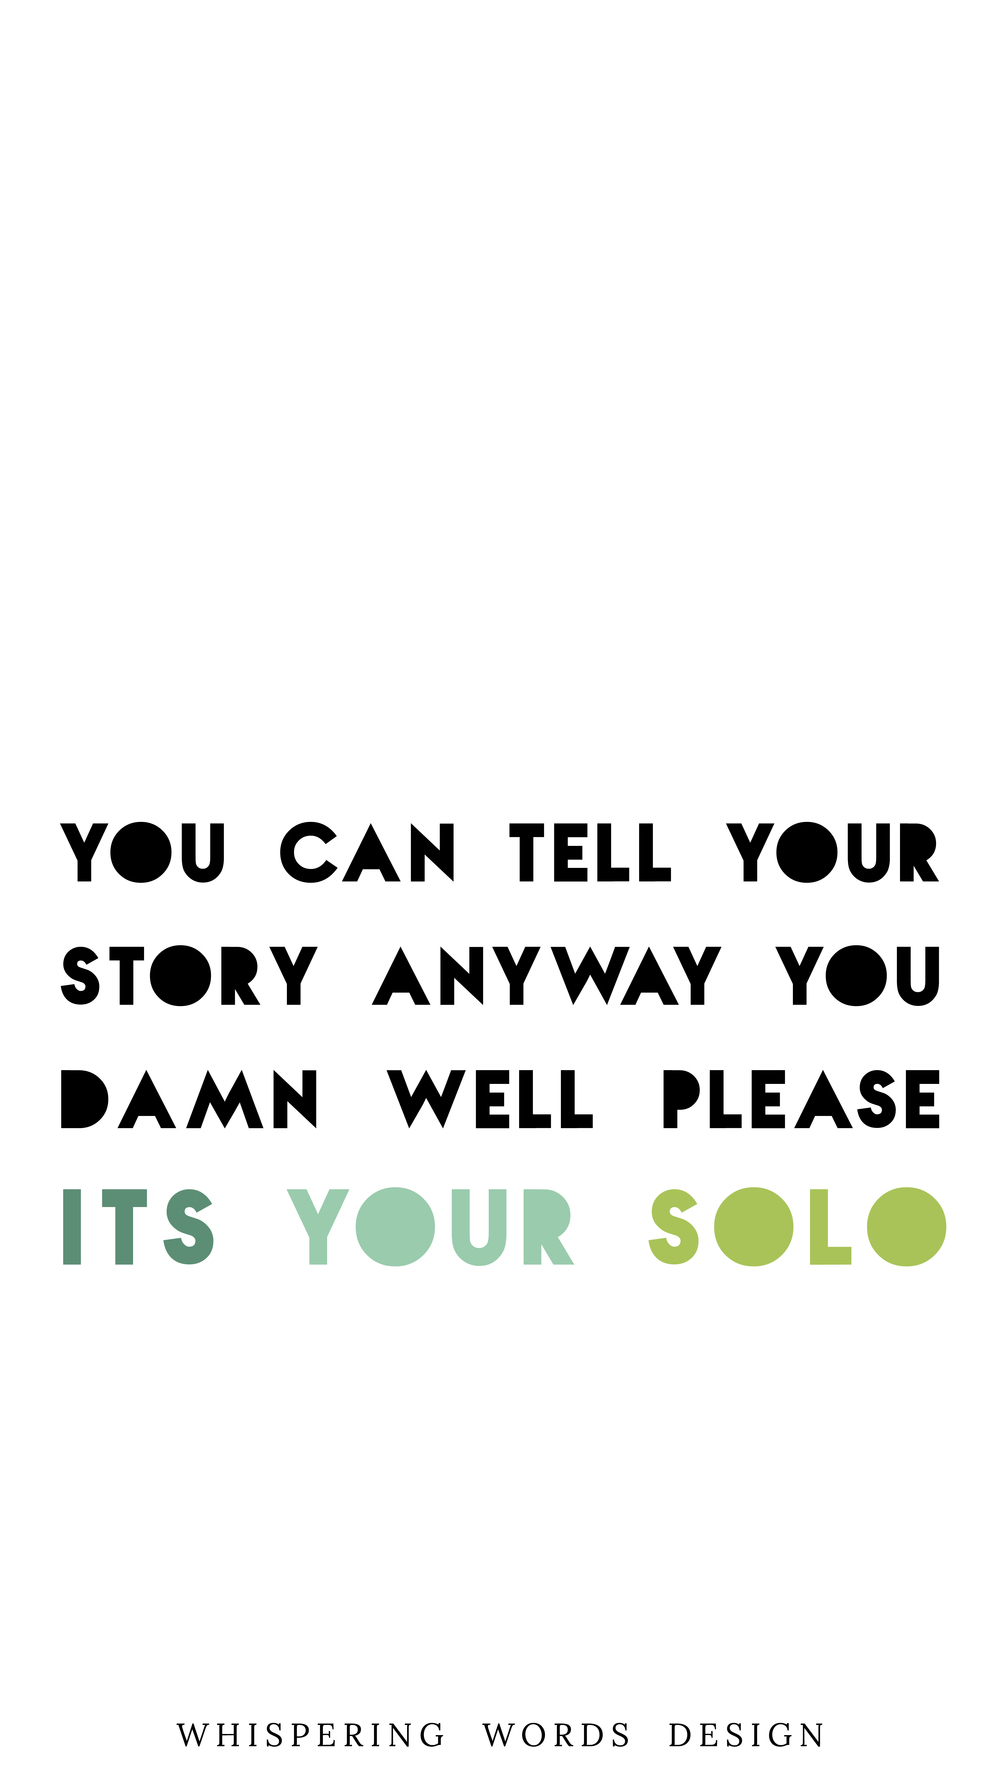 Its_Your_Solo_iPhone_wallpaper.jpg